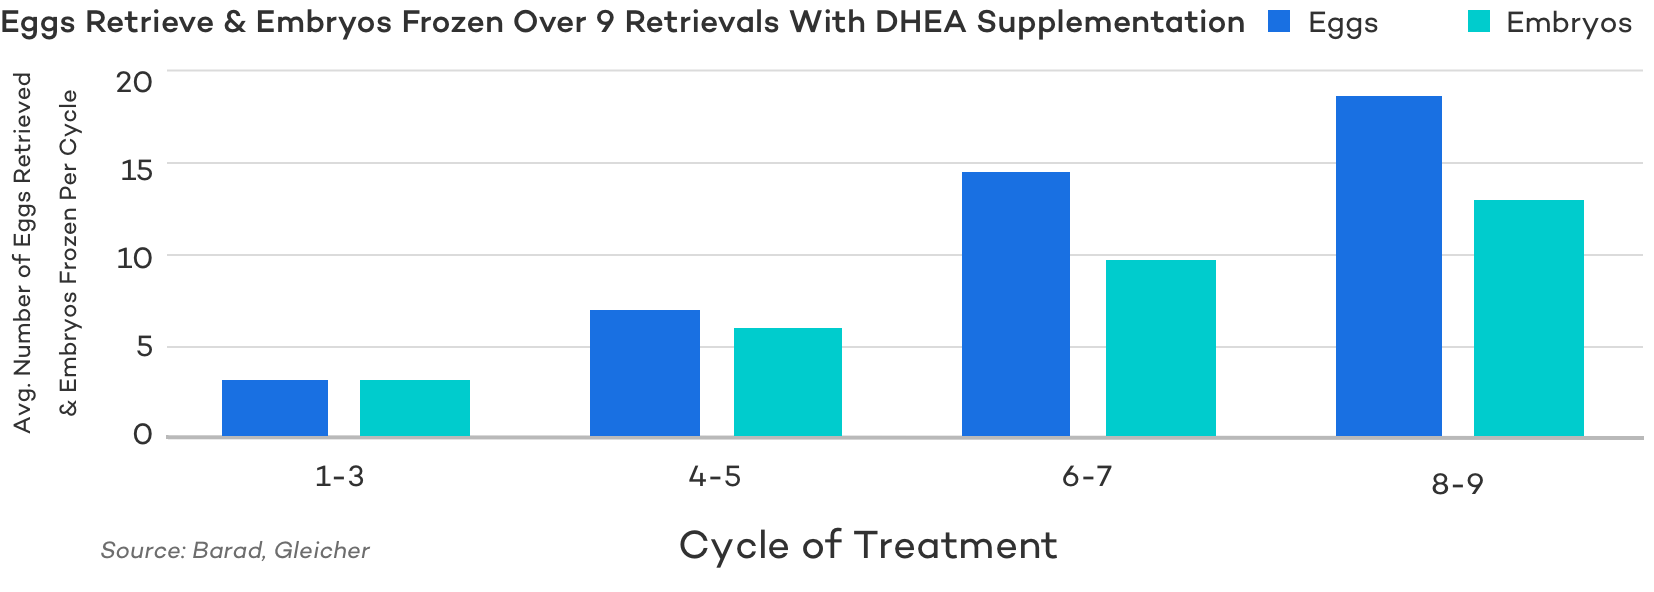 Improved Ovarian Response with DHEA Supplementation